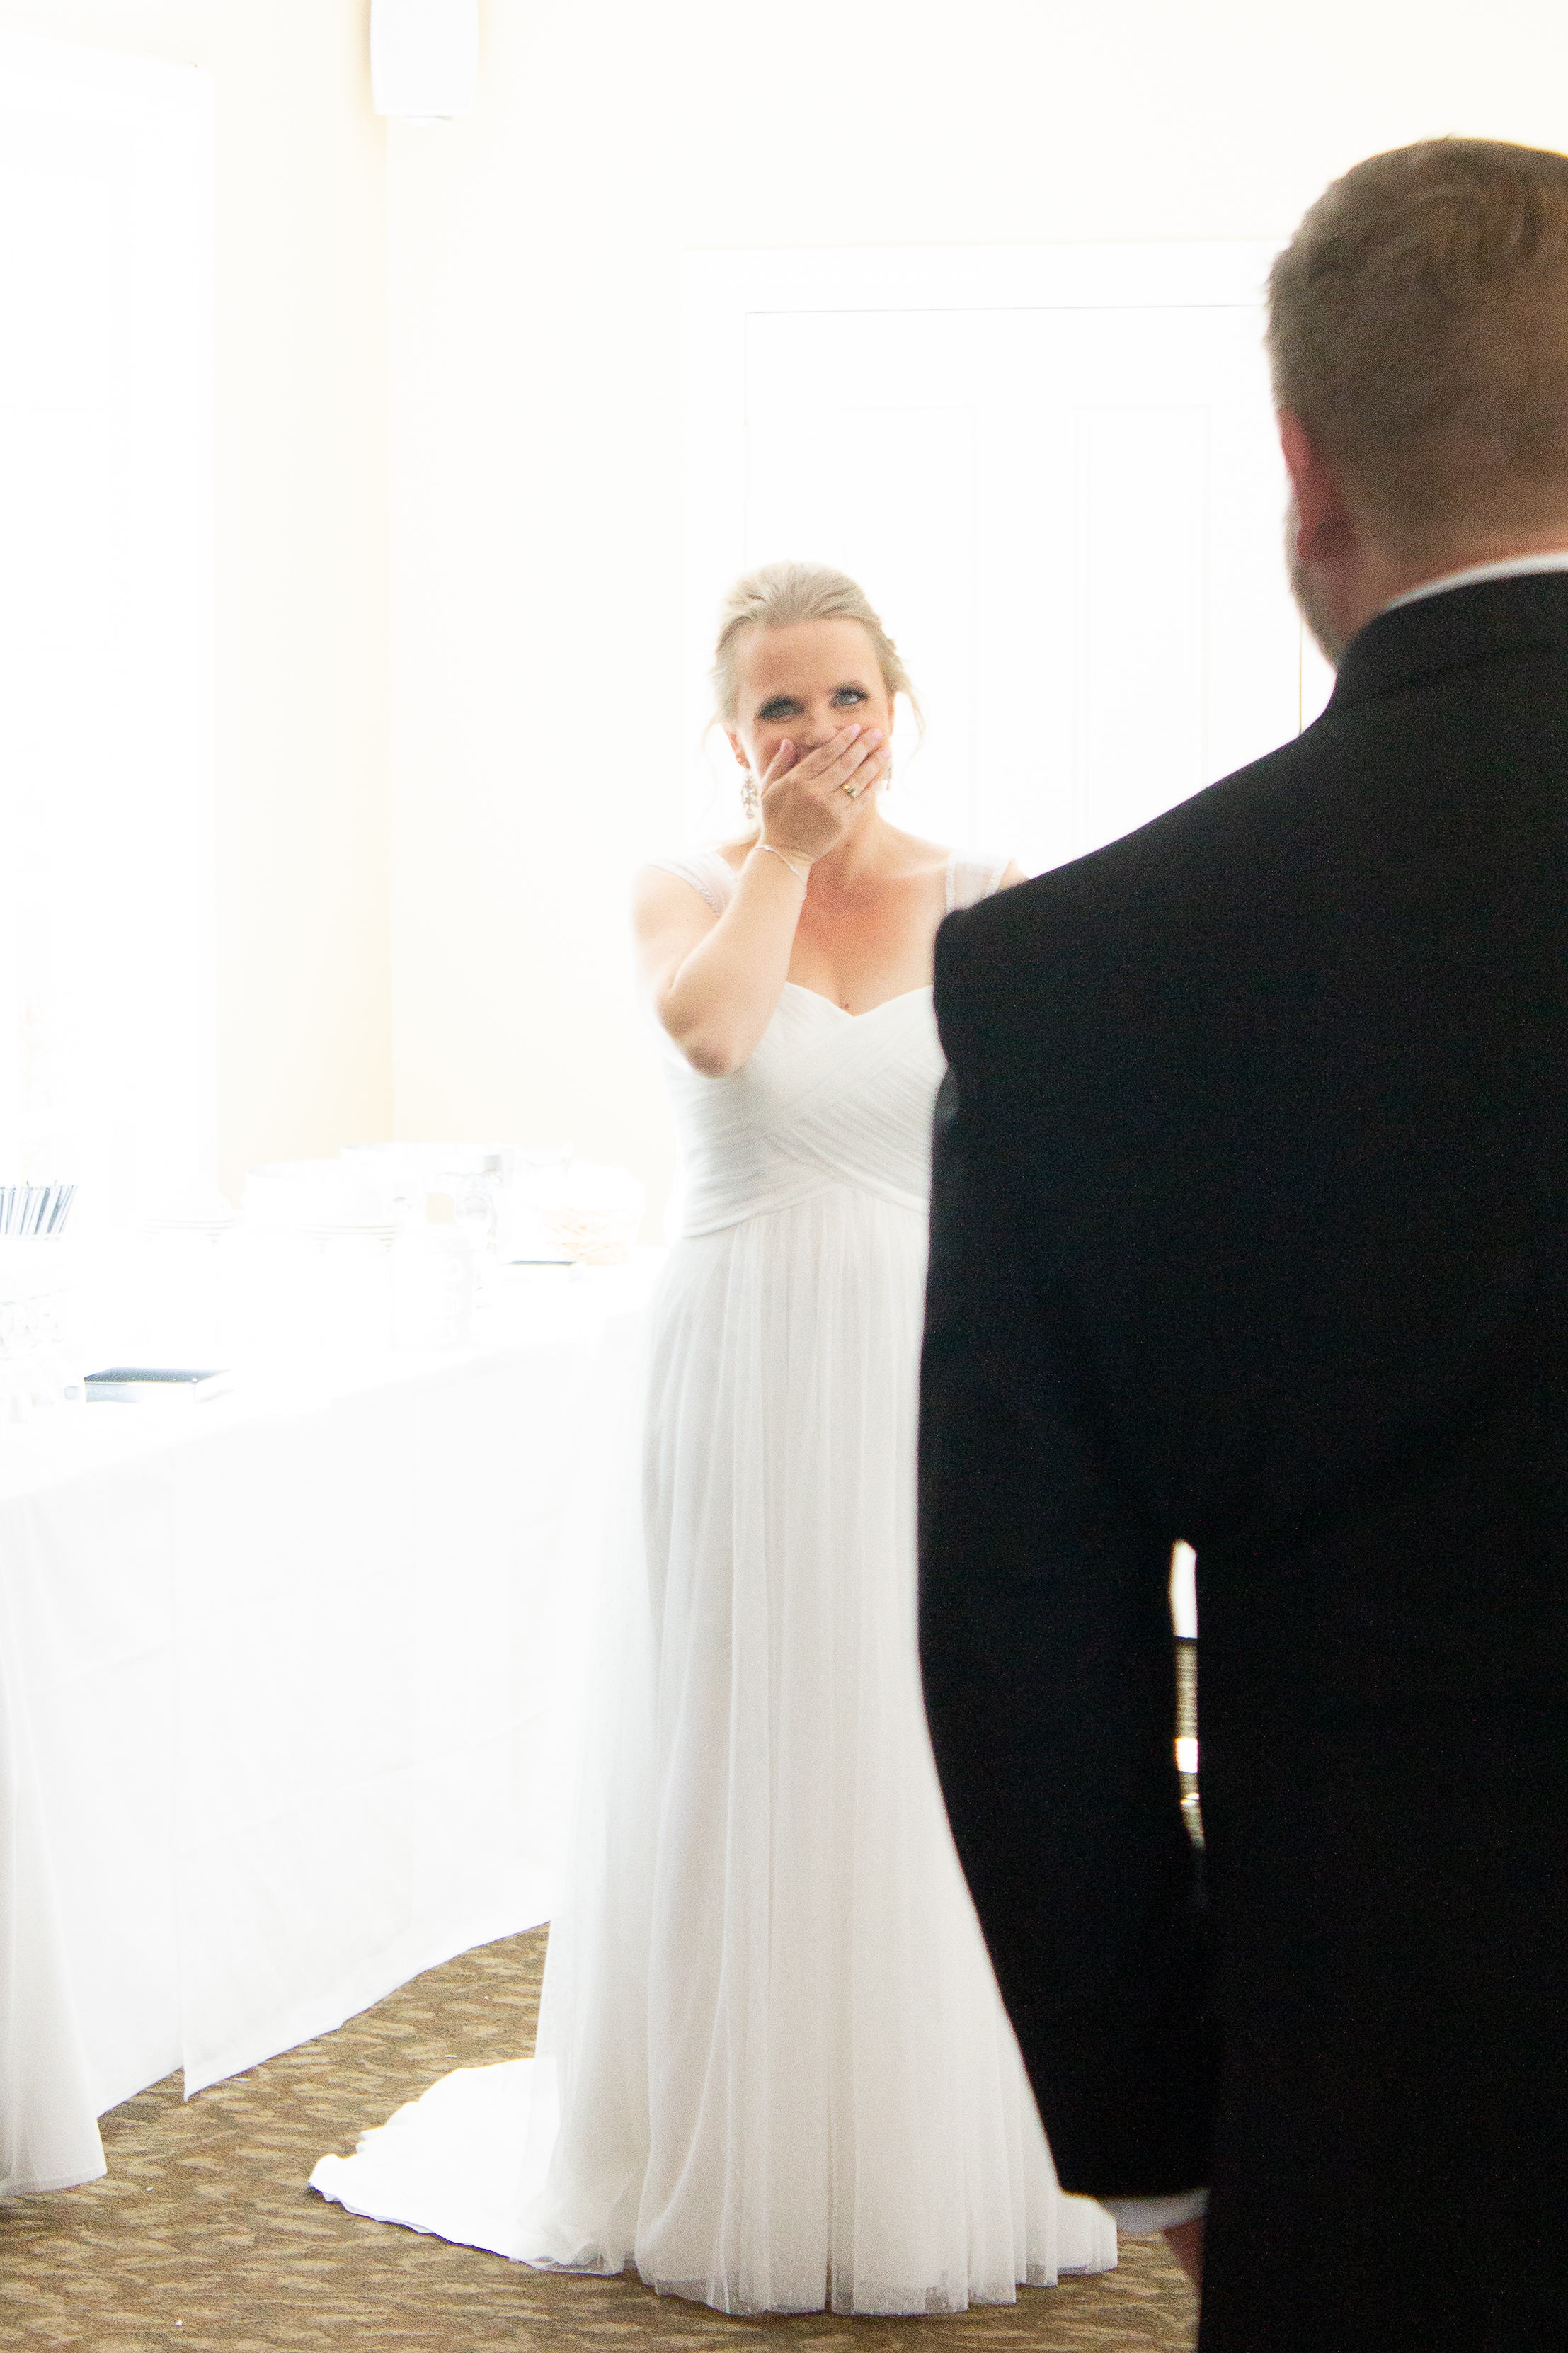 A bride covers her mouth in pleased surprise at seeing her groom in his wedding outfit for the first time.